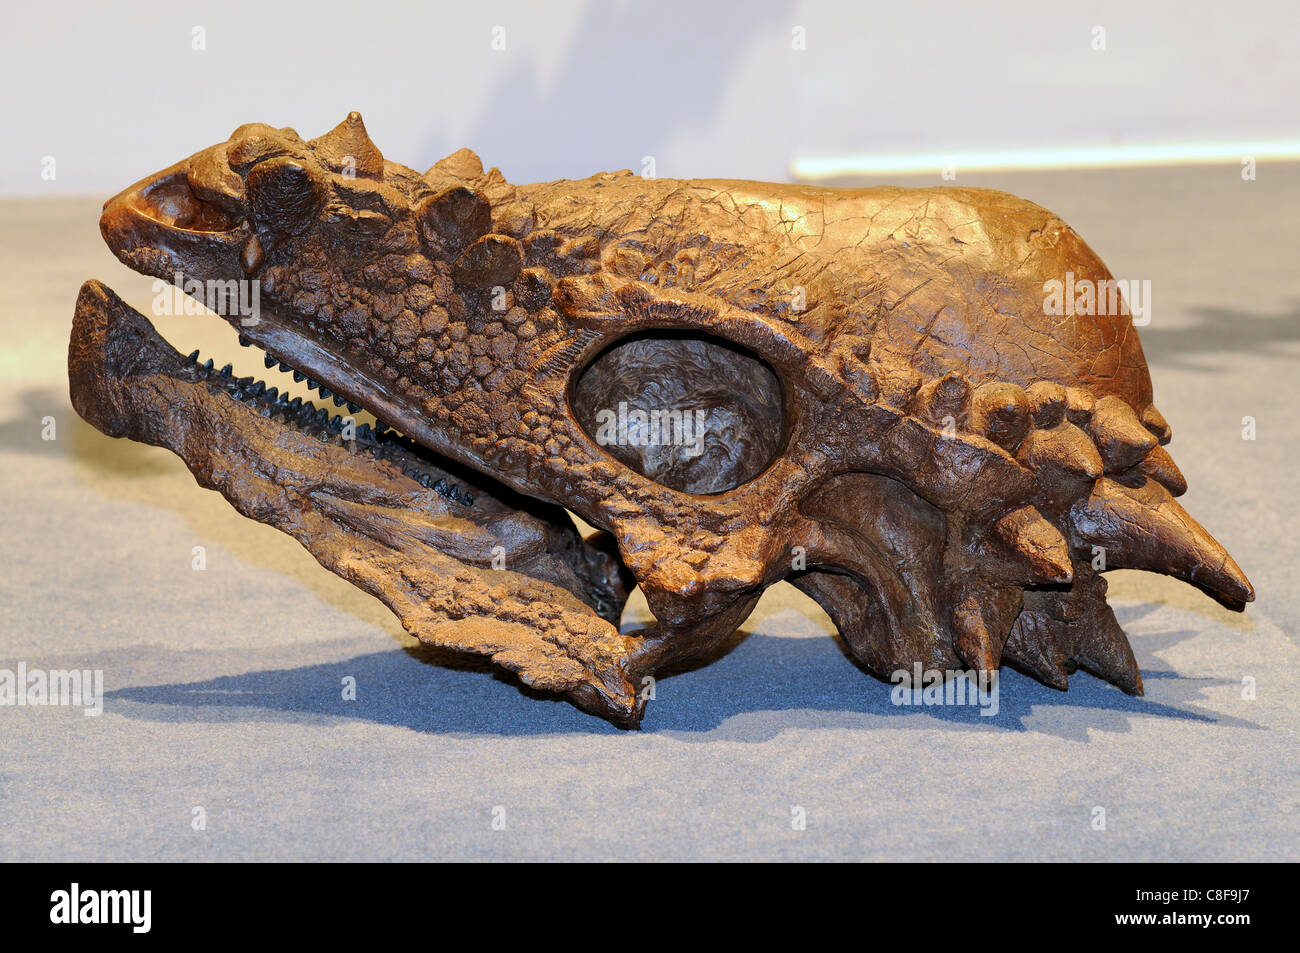 Fossilized skull of a Pachycephalosaurus wyomingensis 'thick headed lizard' dinosaur from the Cretaceous - Stock Image